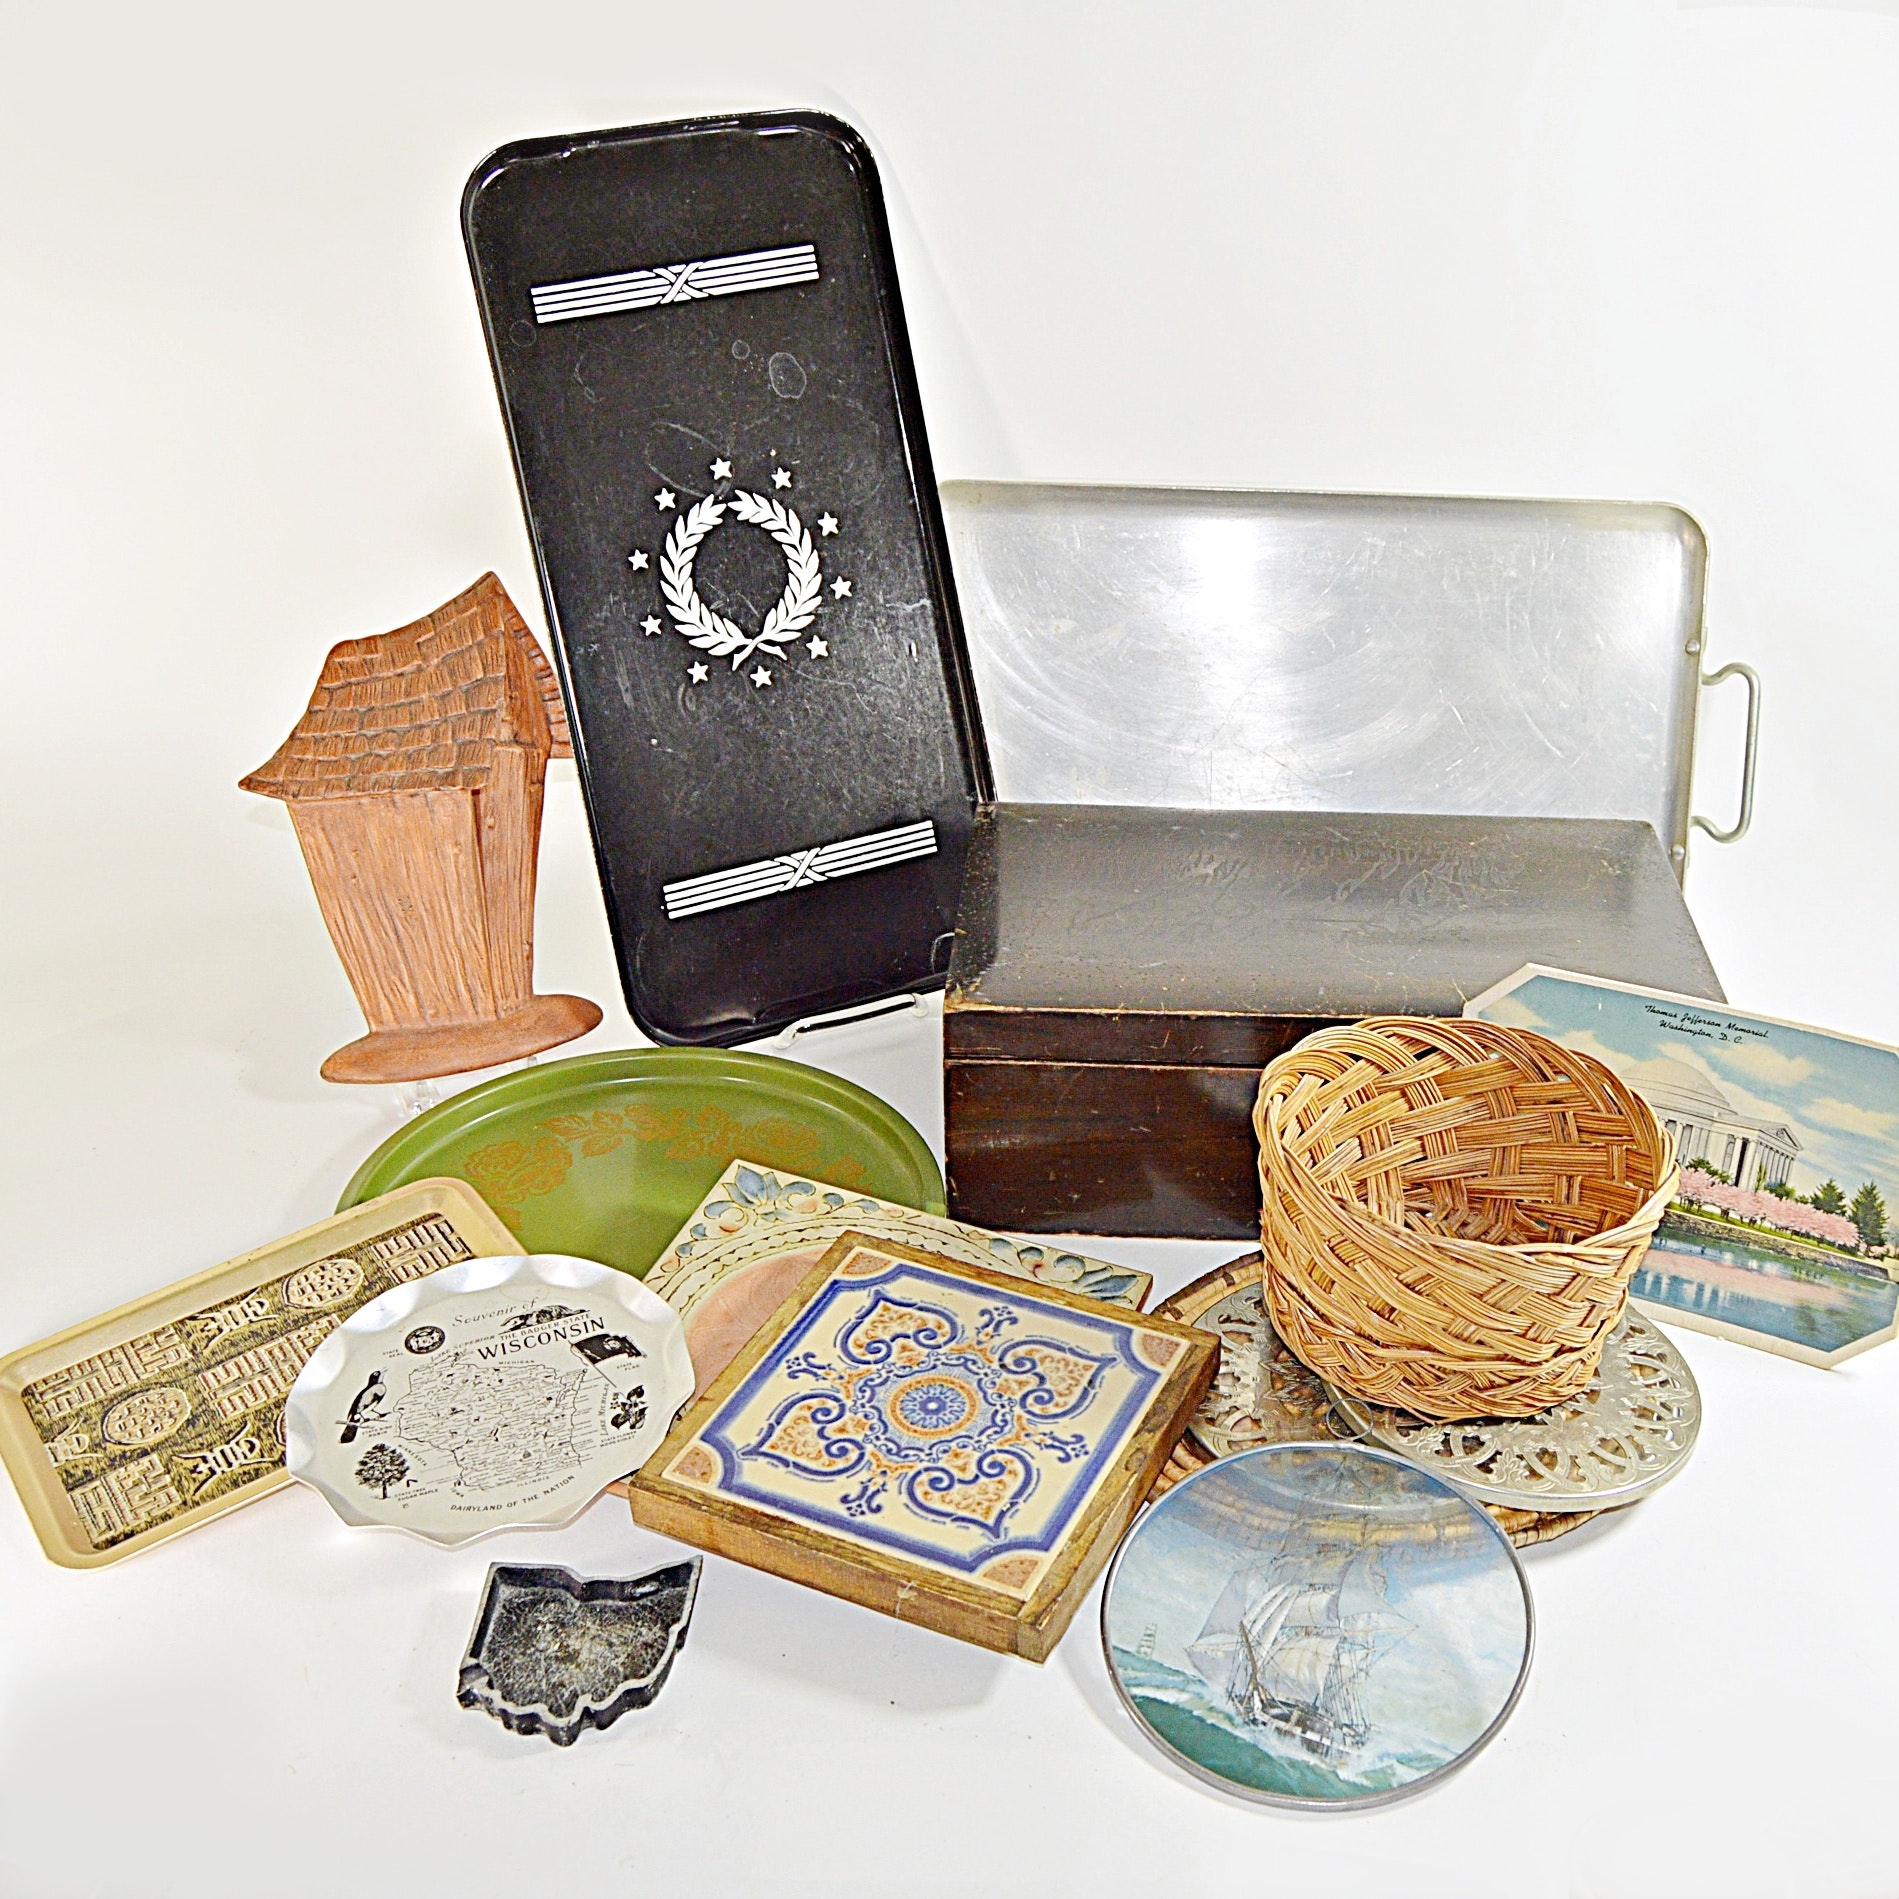 Vintage Trays, Tiles, Wooden Box and Baskets with Enamelware